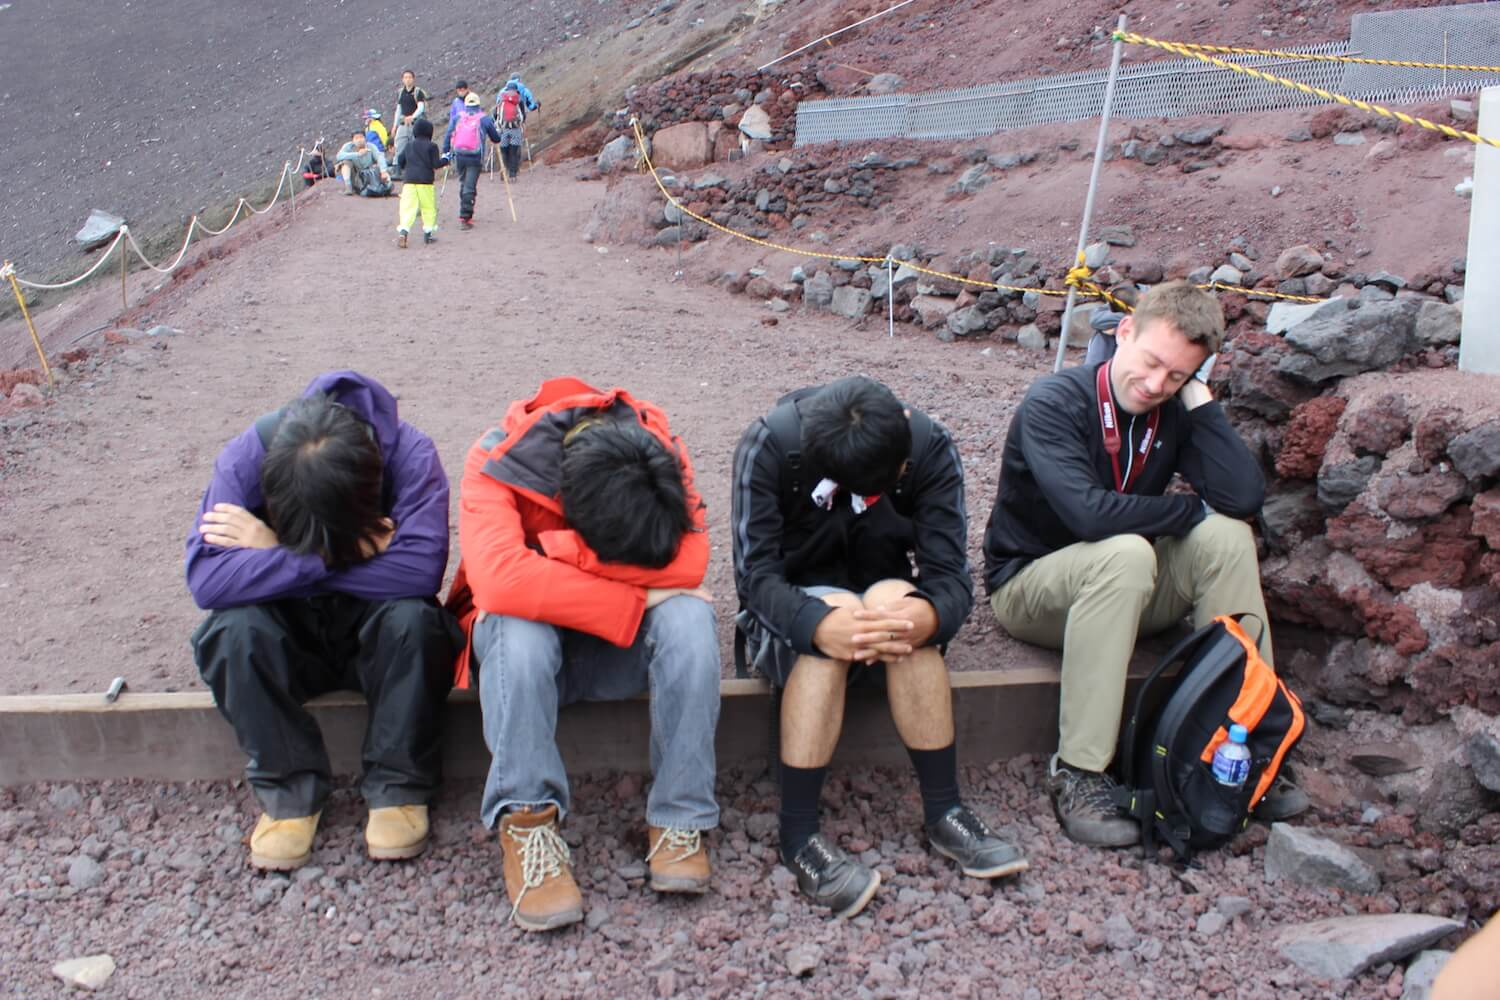 tired group from climbing mt fuji